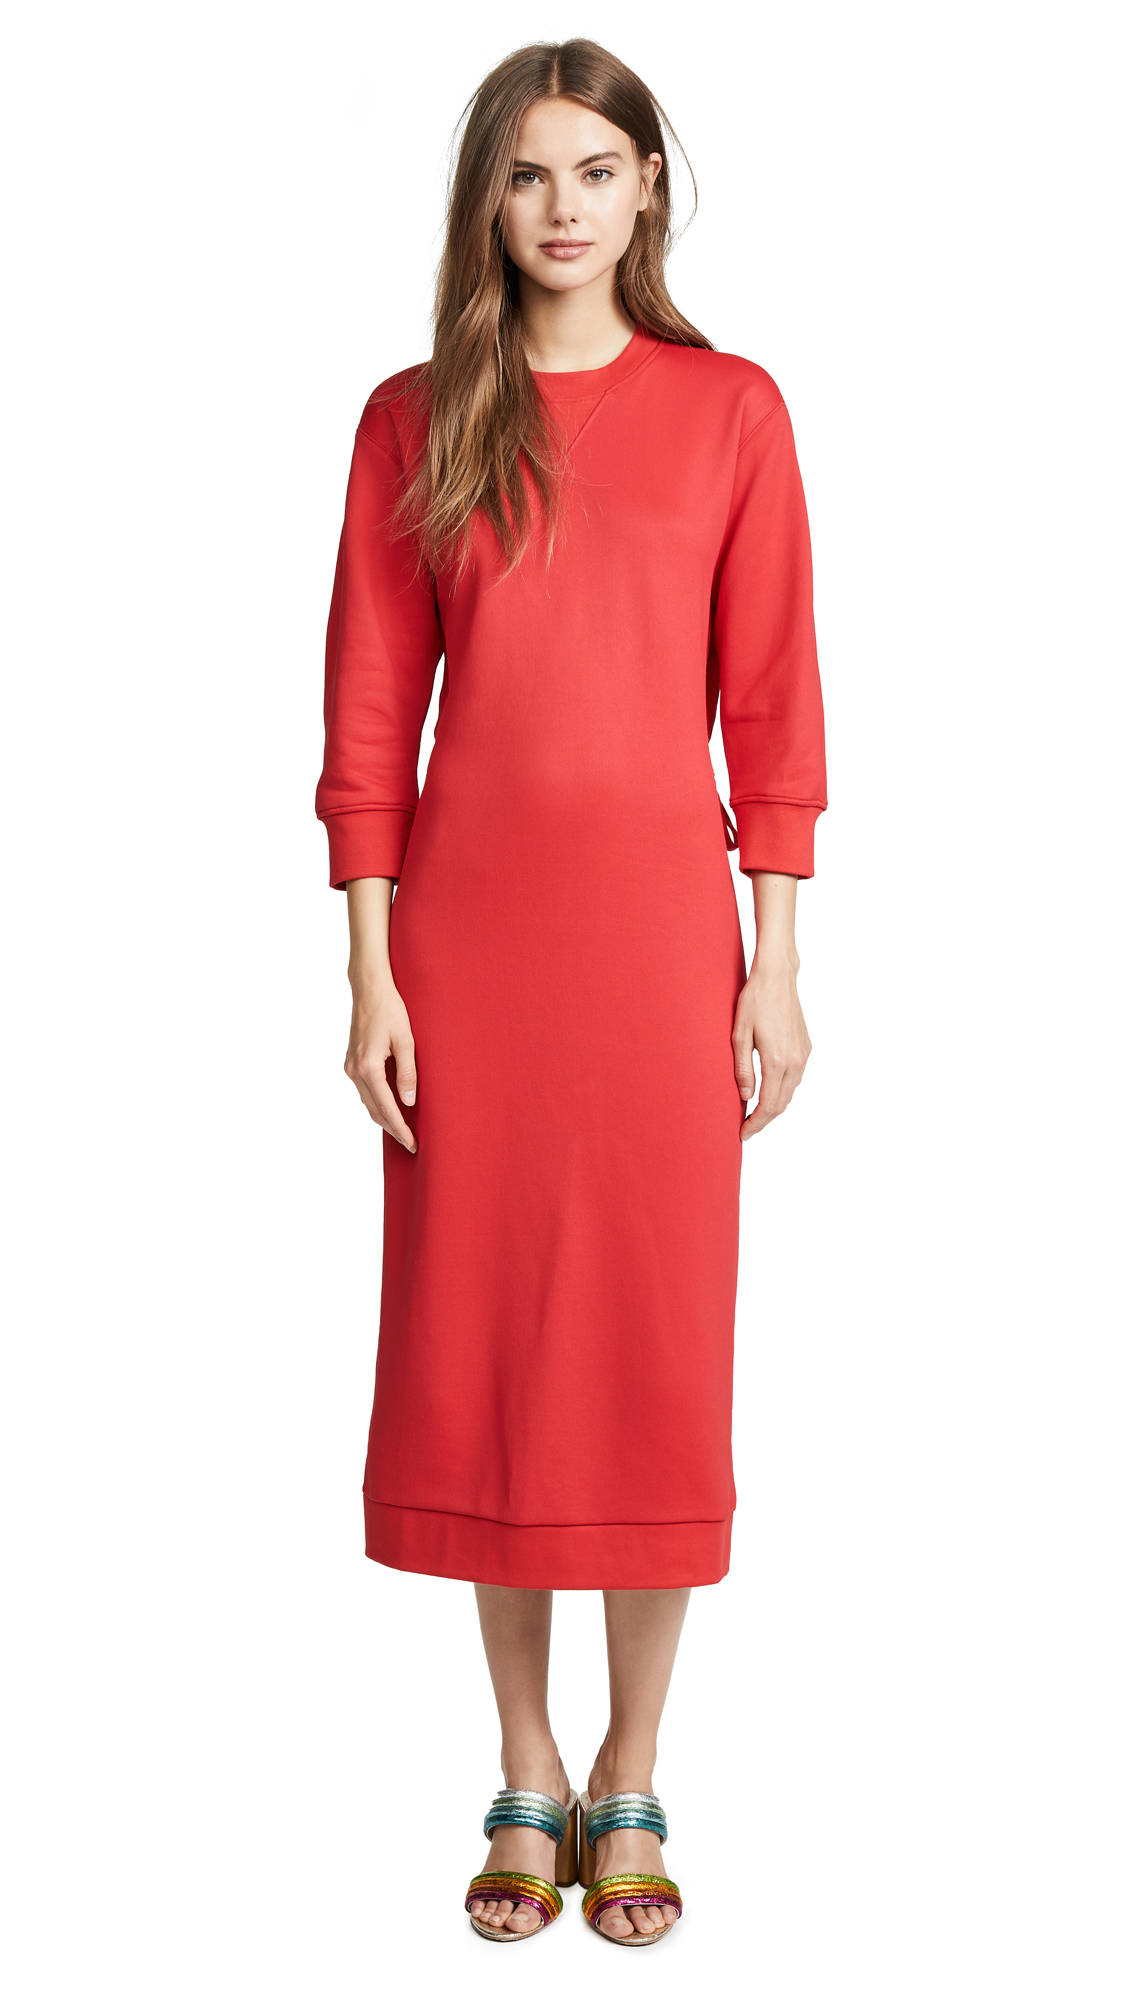 Cotton-Blend Sweatshirt Dress, Red